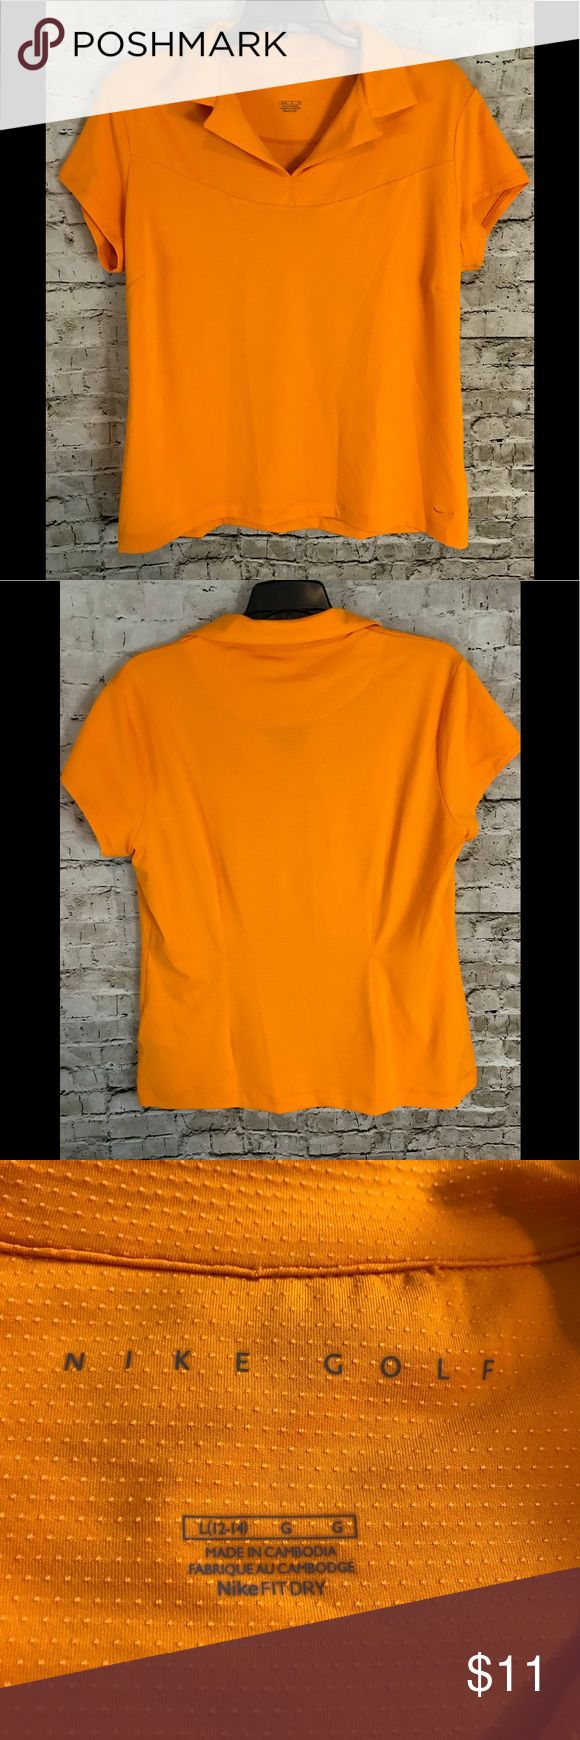 Women's Nike Golf Large Orange Short Sleeve Shirt You will be purchasing a Women's Nike Golf Orange Short Sleeve Shirt Size Large - please see photos for measurements to determine fit. It is used. If you have any further questions, please do not hesitate to ask. Thanks for Looking! Sku# EMP A1-04 Nike Tops